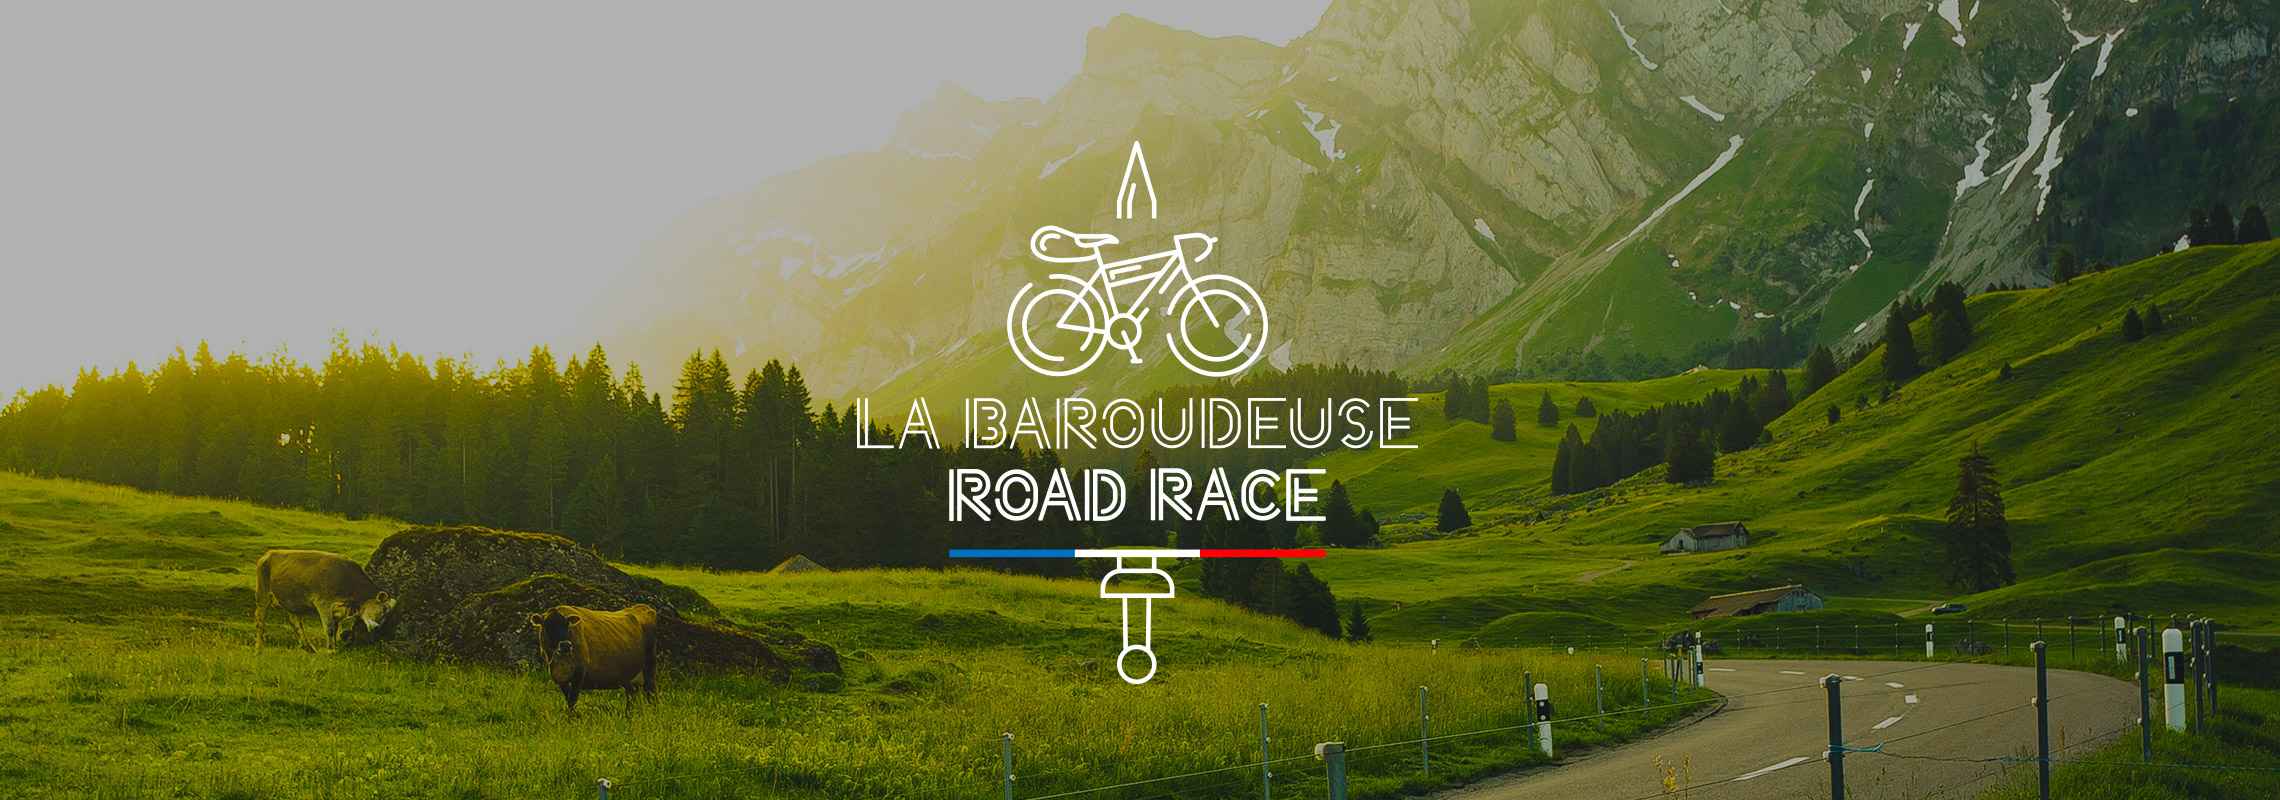 La Baroudeuse Road Race